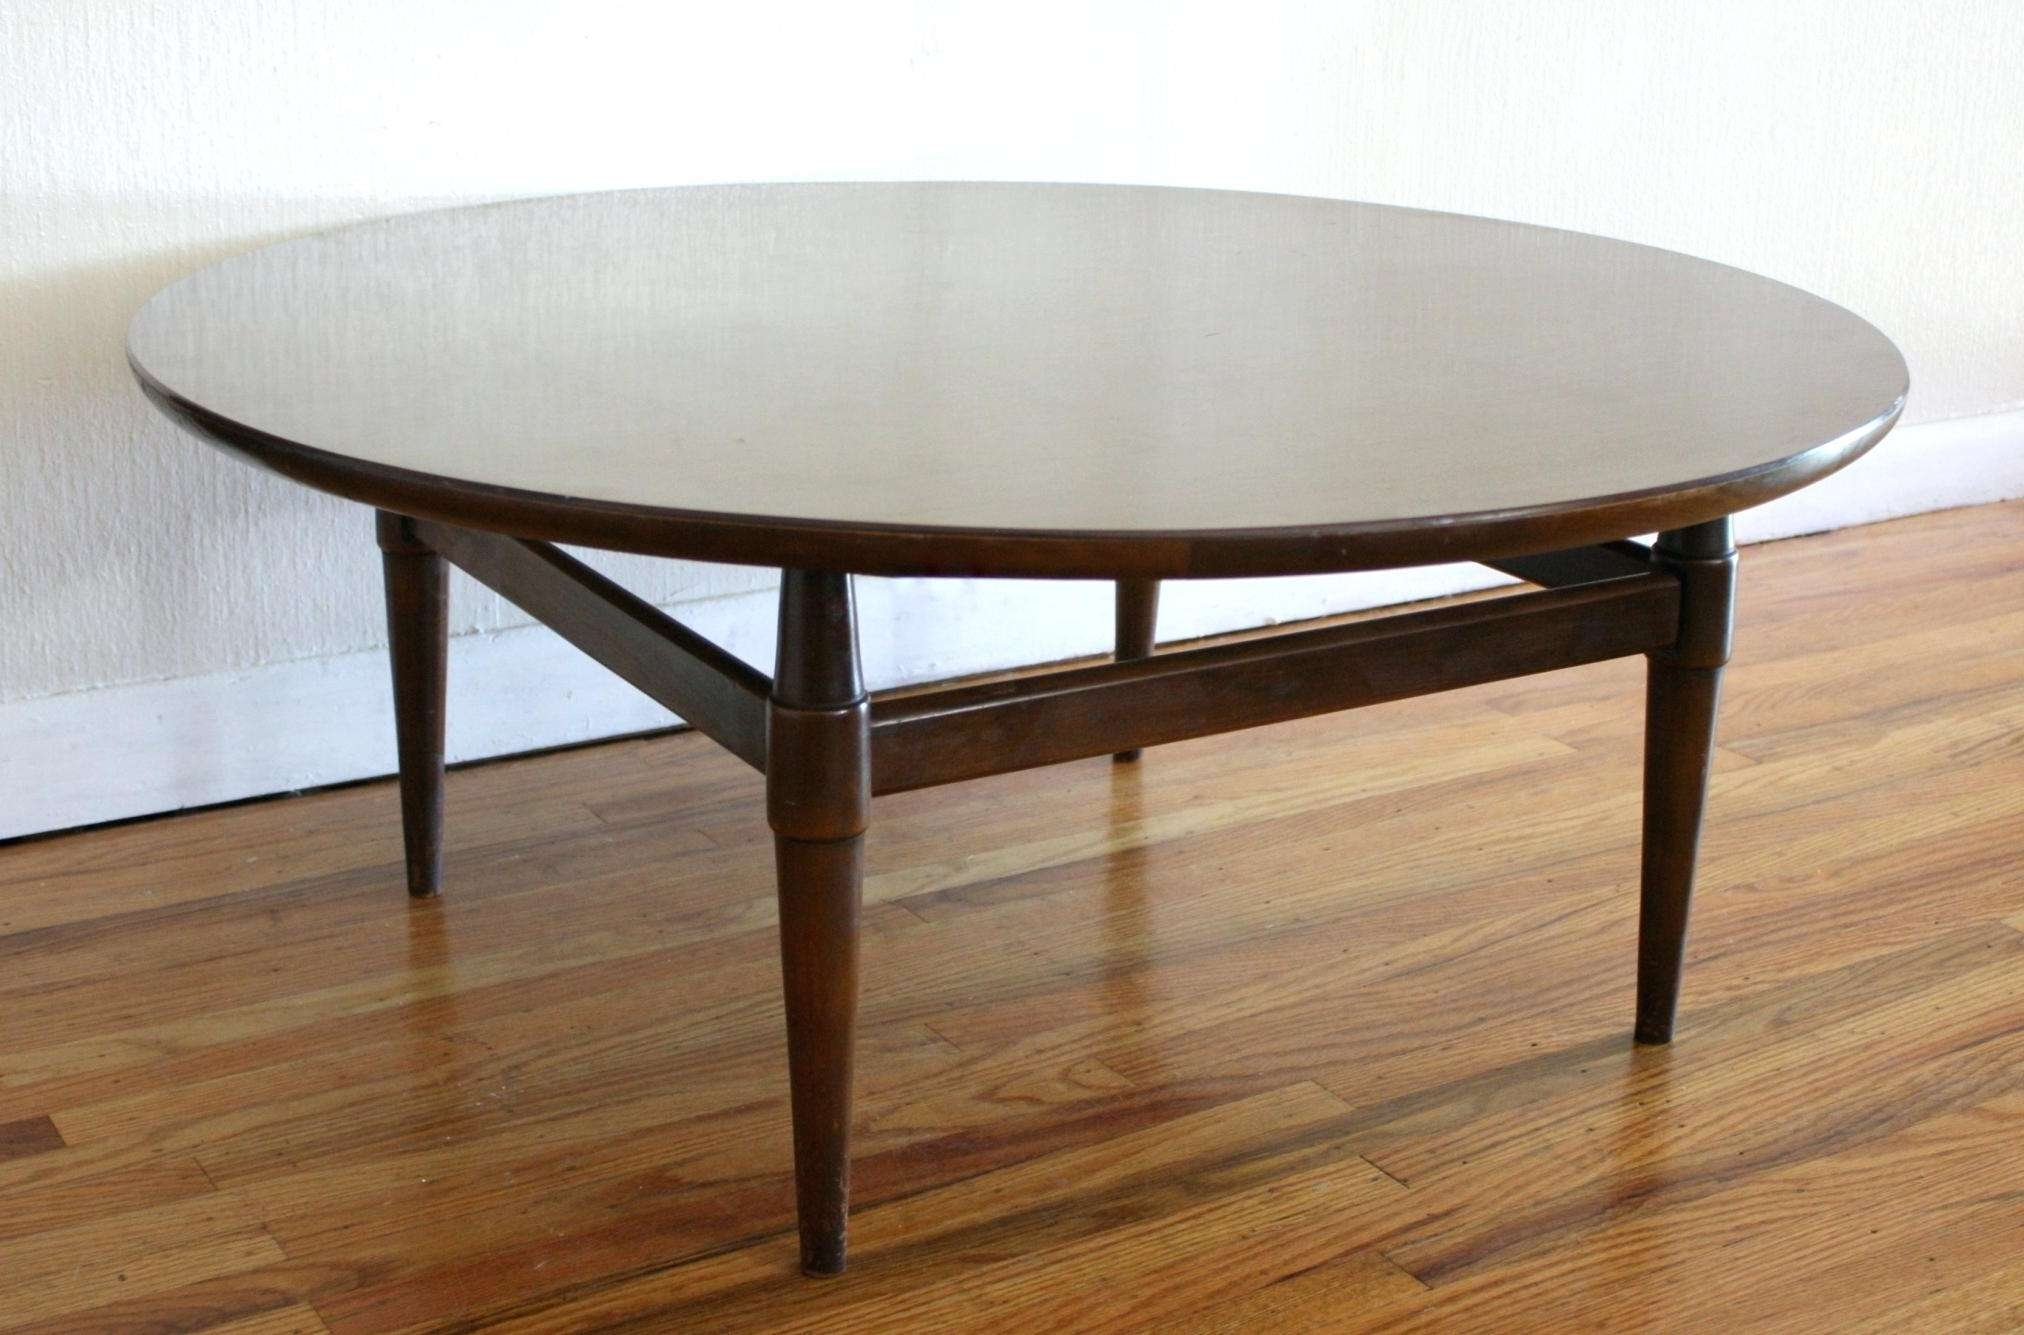 Latest Coffee Tables With Rounded Corners Inside Lightfoundation.co Page 44: Coffee Table Rounded Corners (View 11 of 20)